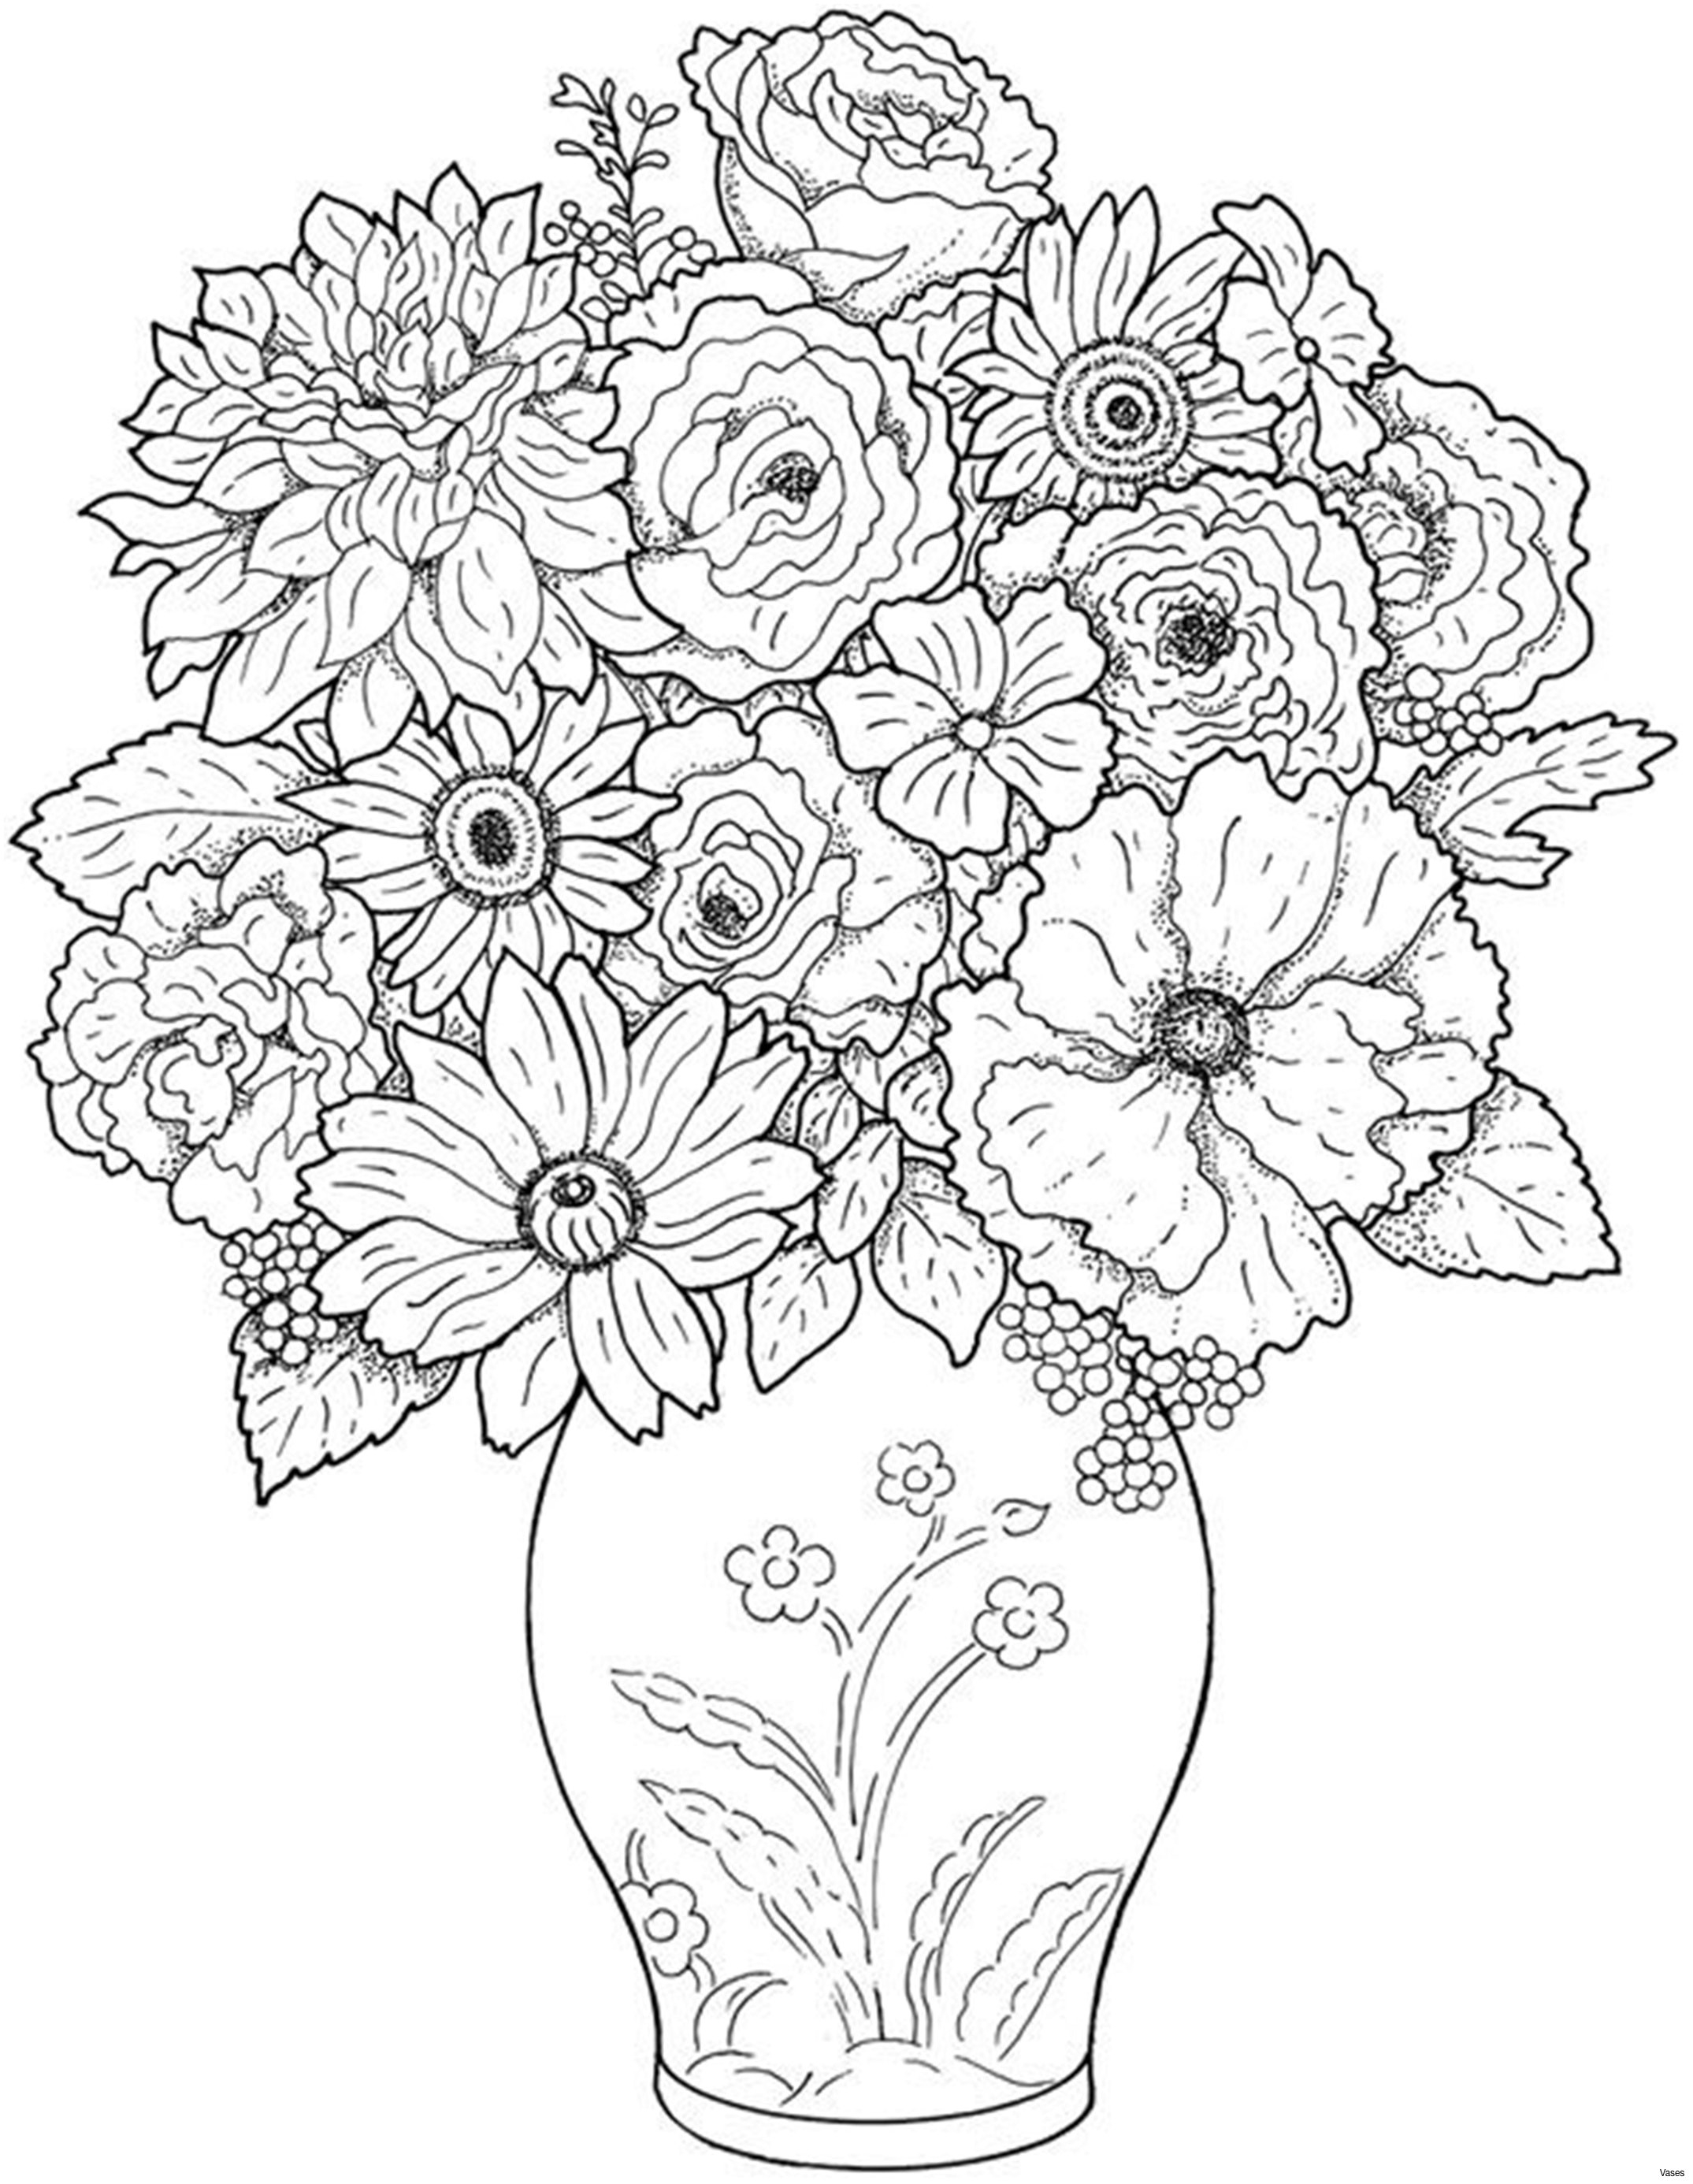 Flower garden coloring pages printable ~ Flower Garden Coloring Pages Printable | Free Coloring Sheets